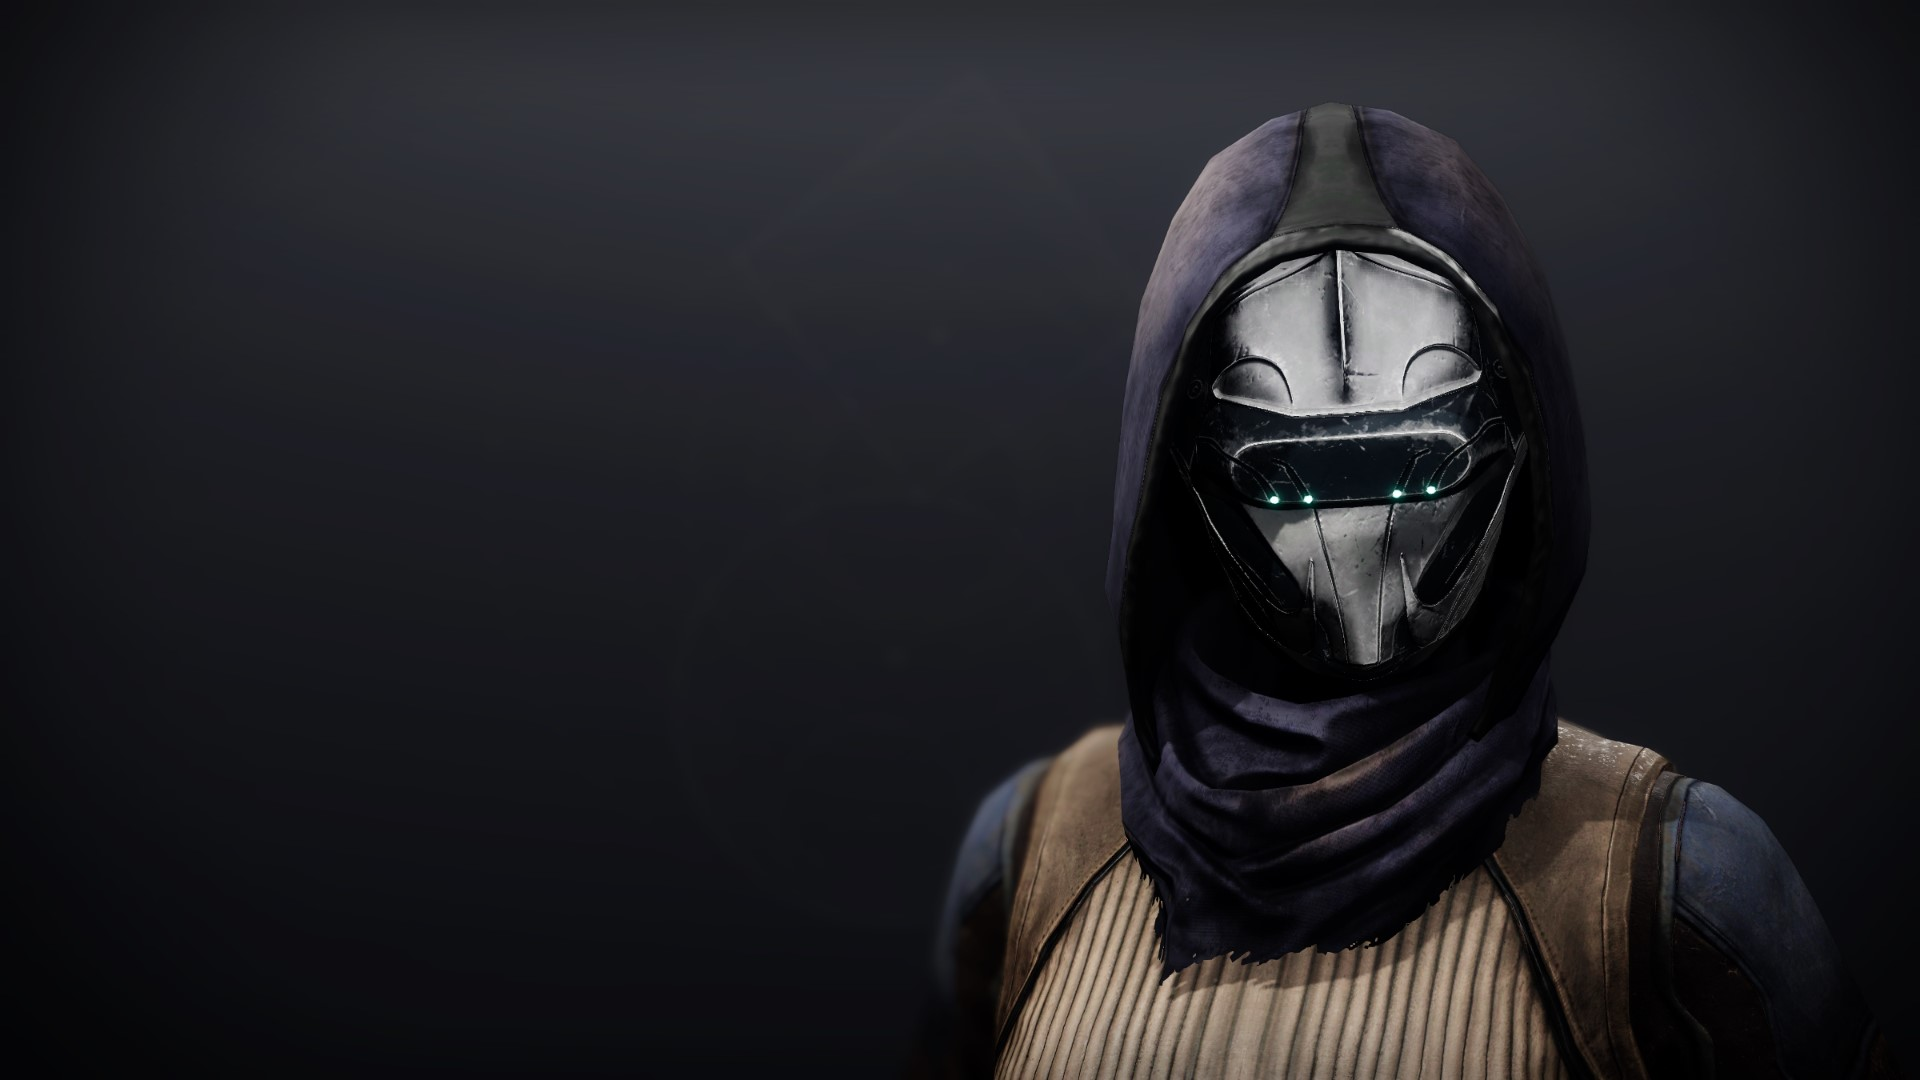 An in-game render of the Celestial Mask.